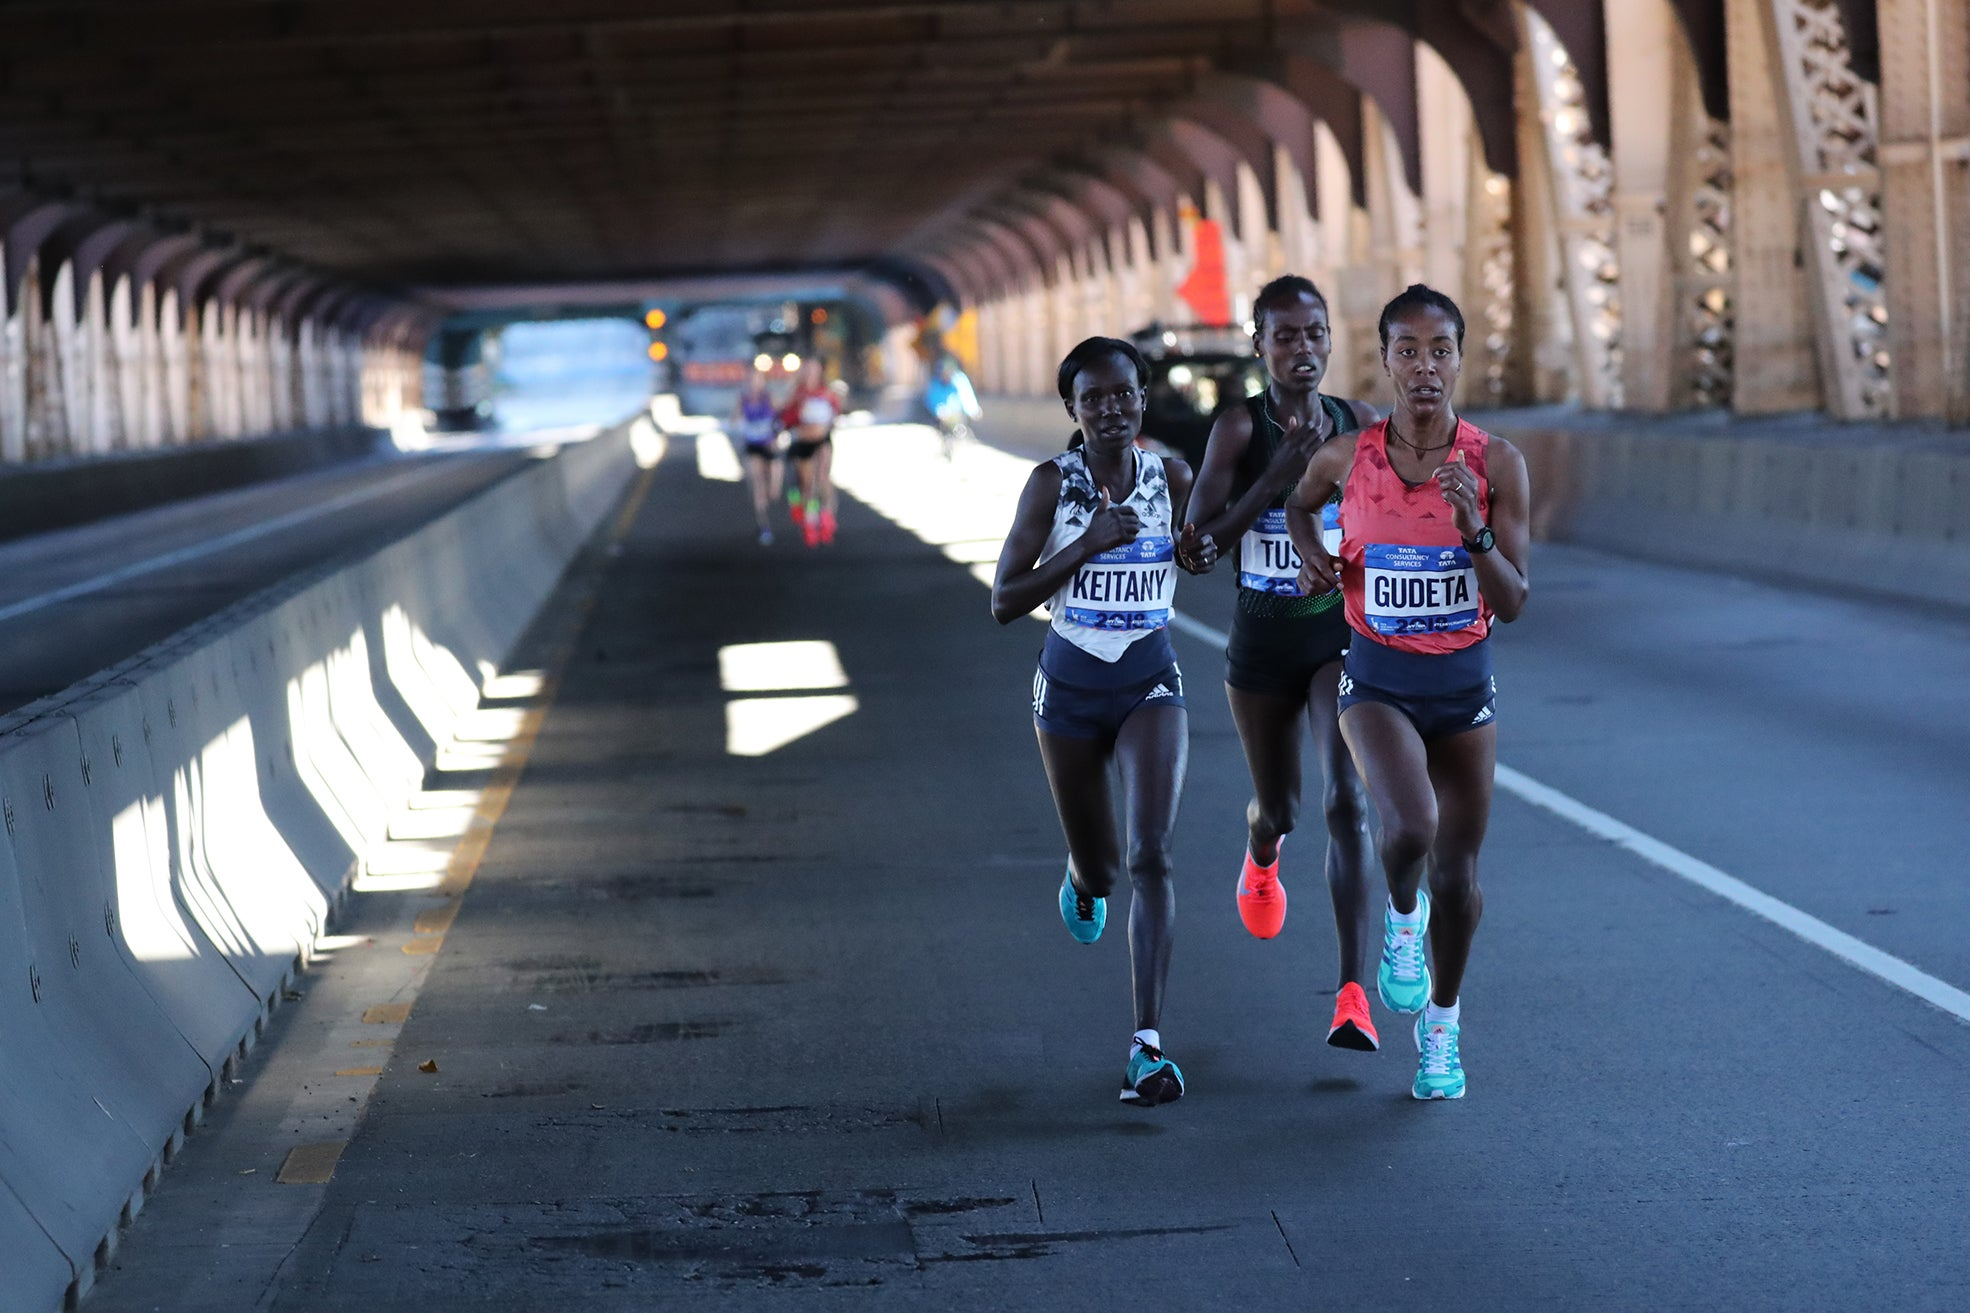 NYCM Queensboro Bridge elite women